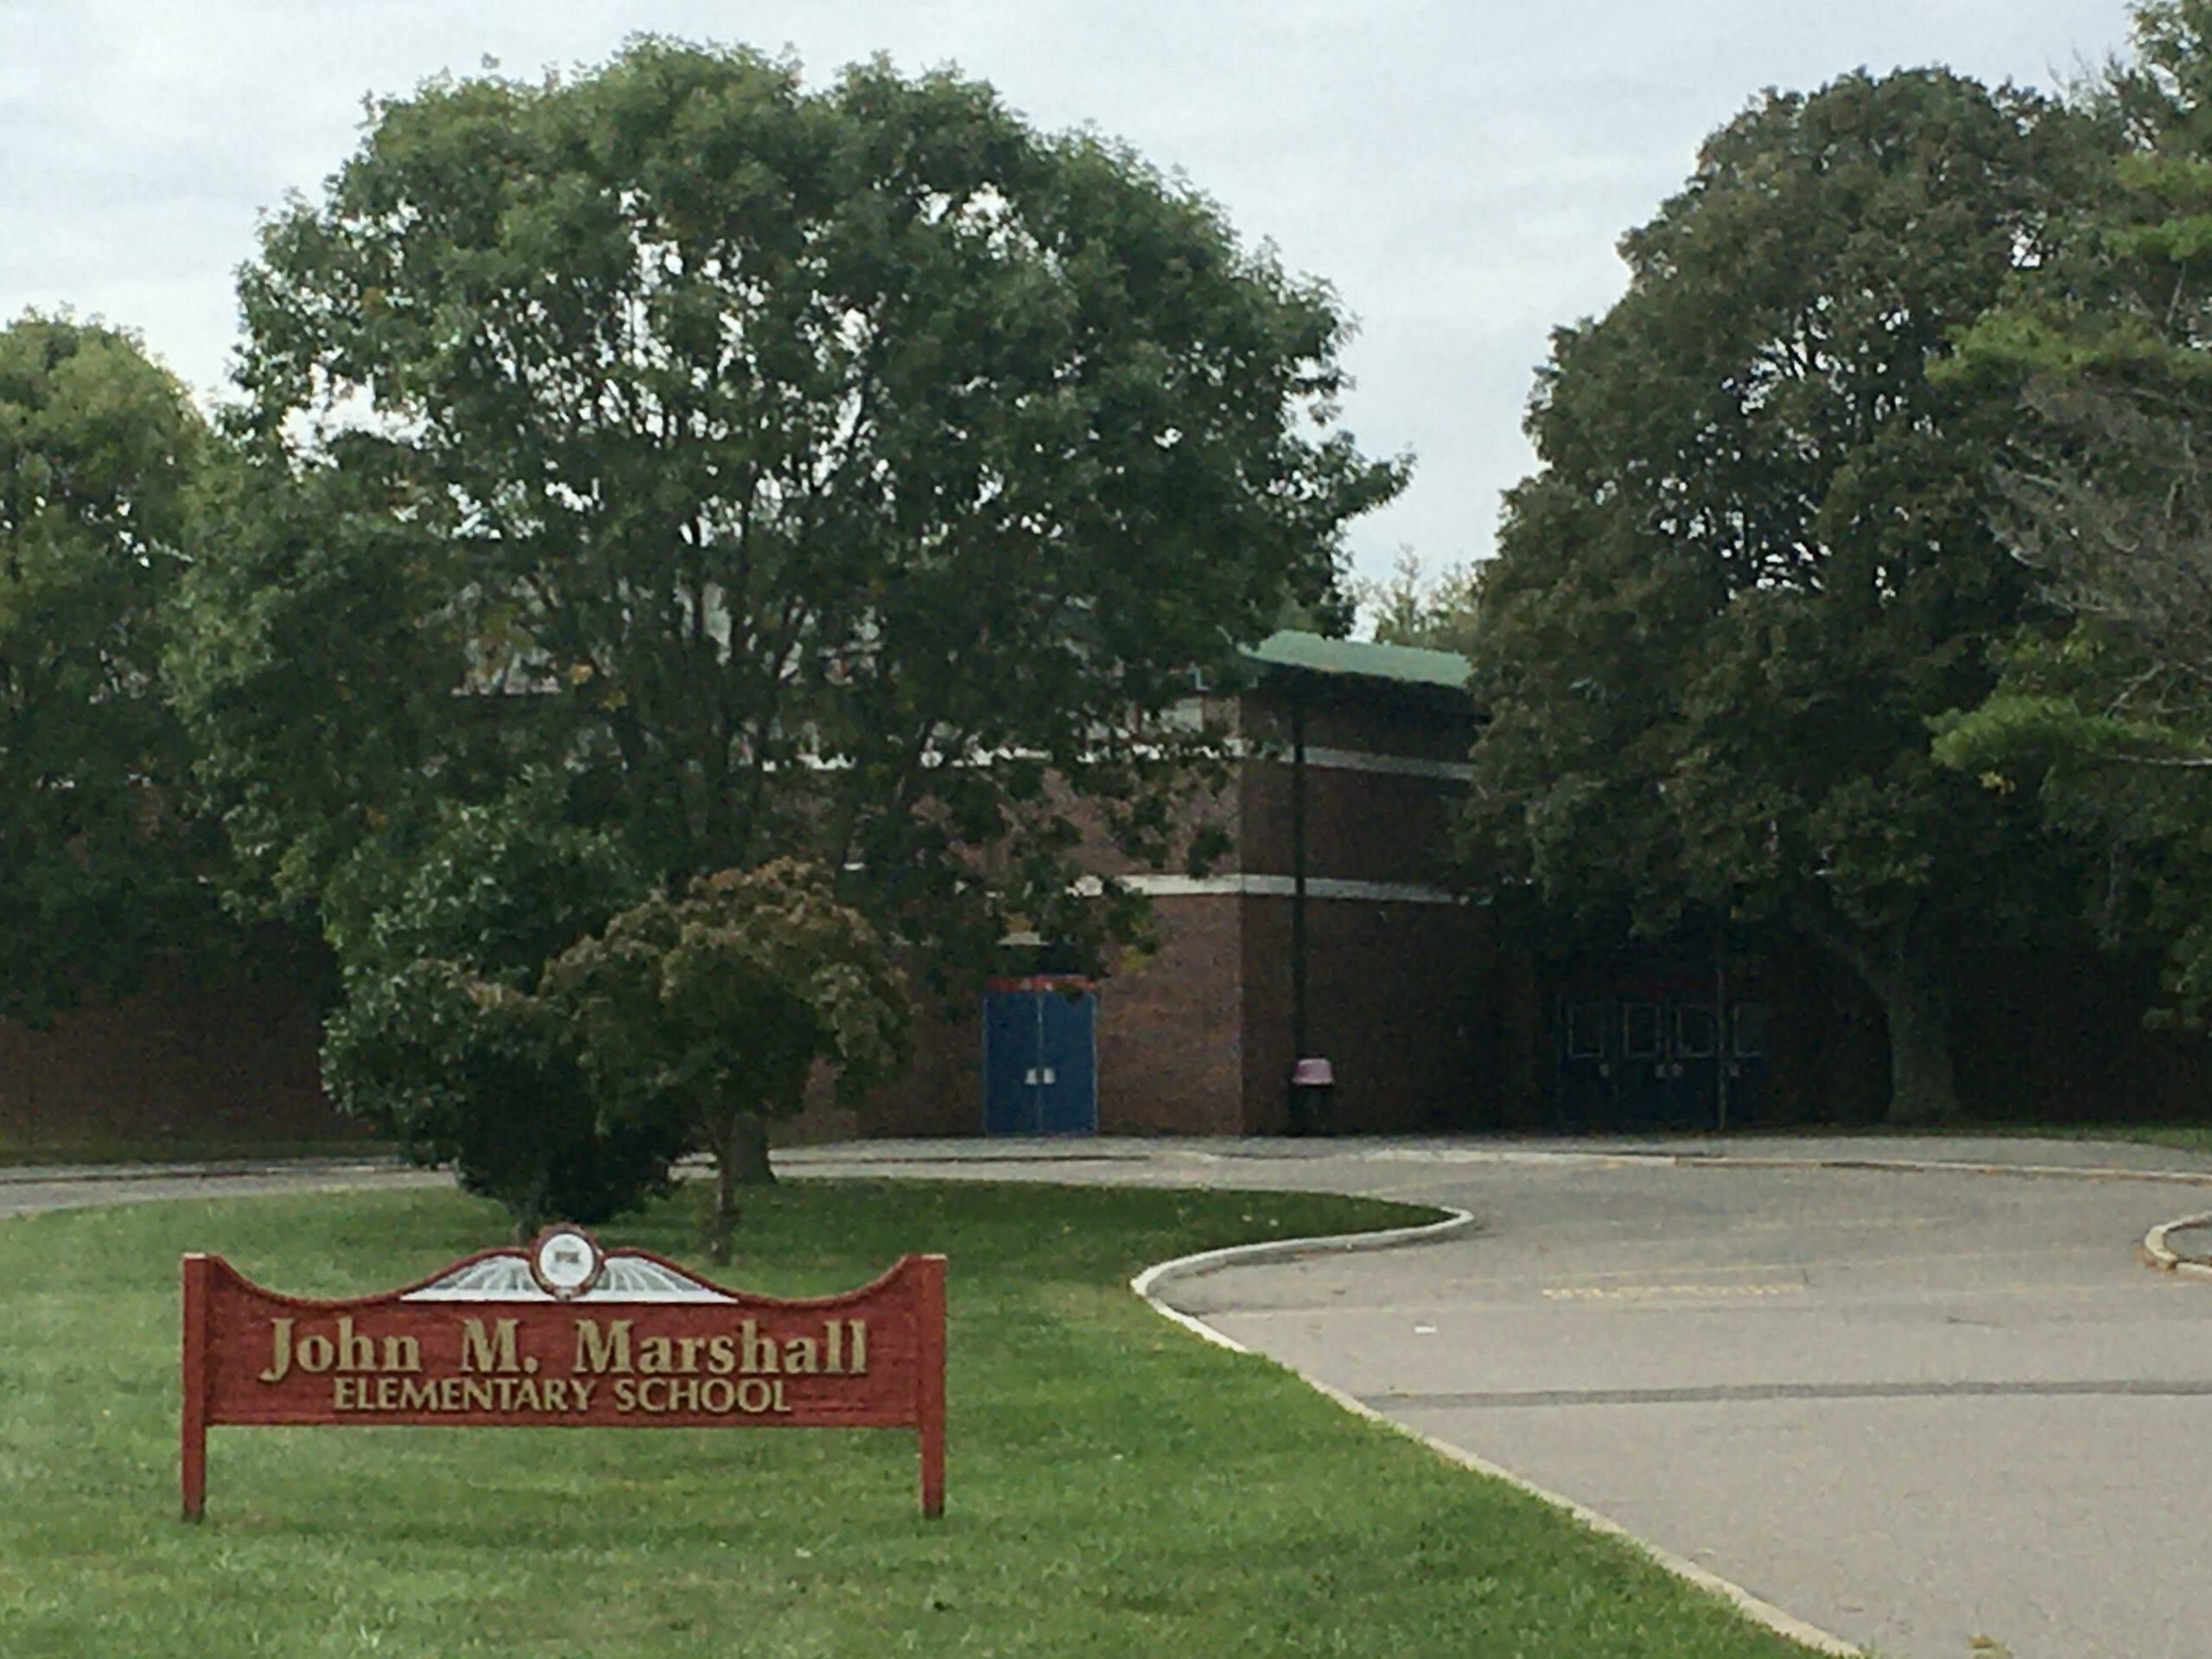 John Marshall Elementary School is seeing an increase in the number of students that are taking classes in-school, despite recent increases in COVID-19 case numbers.